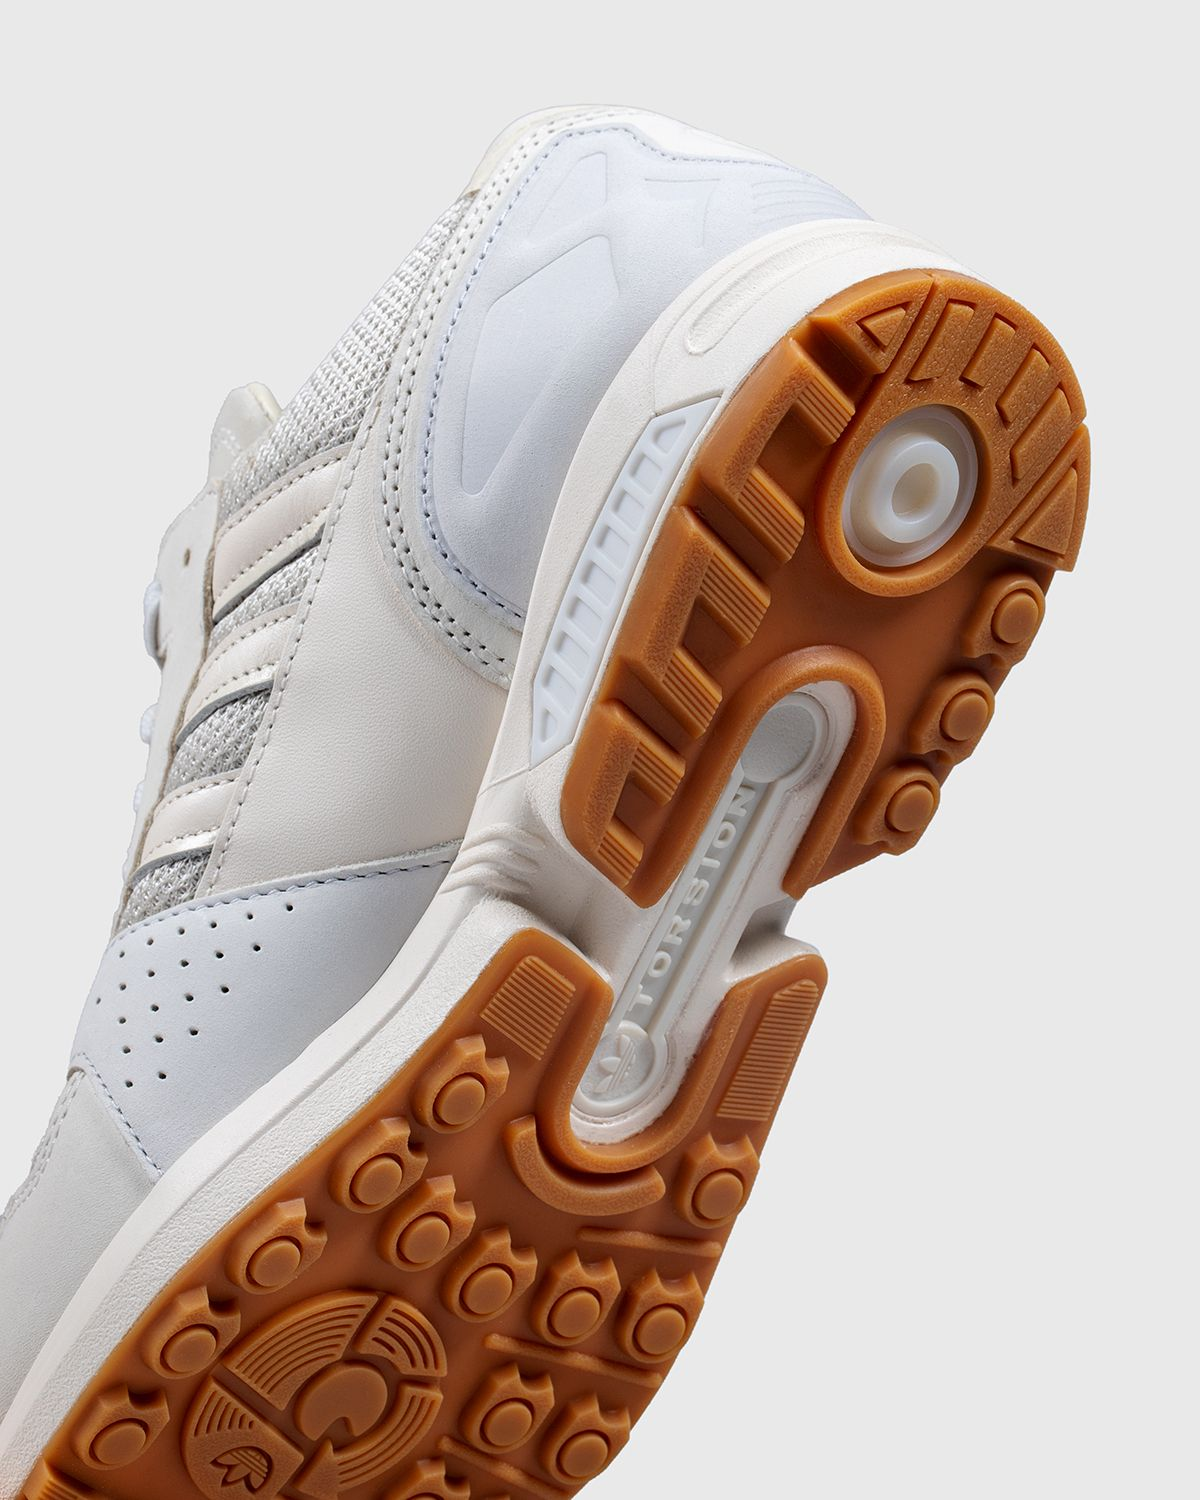 """Our adidas ZX 8000 """"Qualität"""" Is All About Craftsmanship 11"""